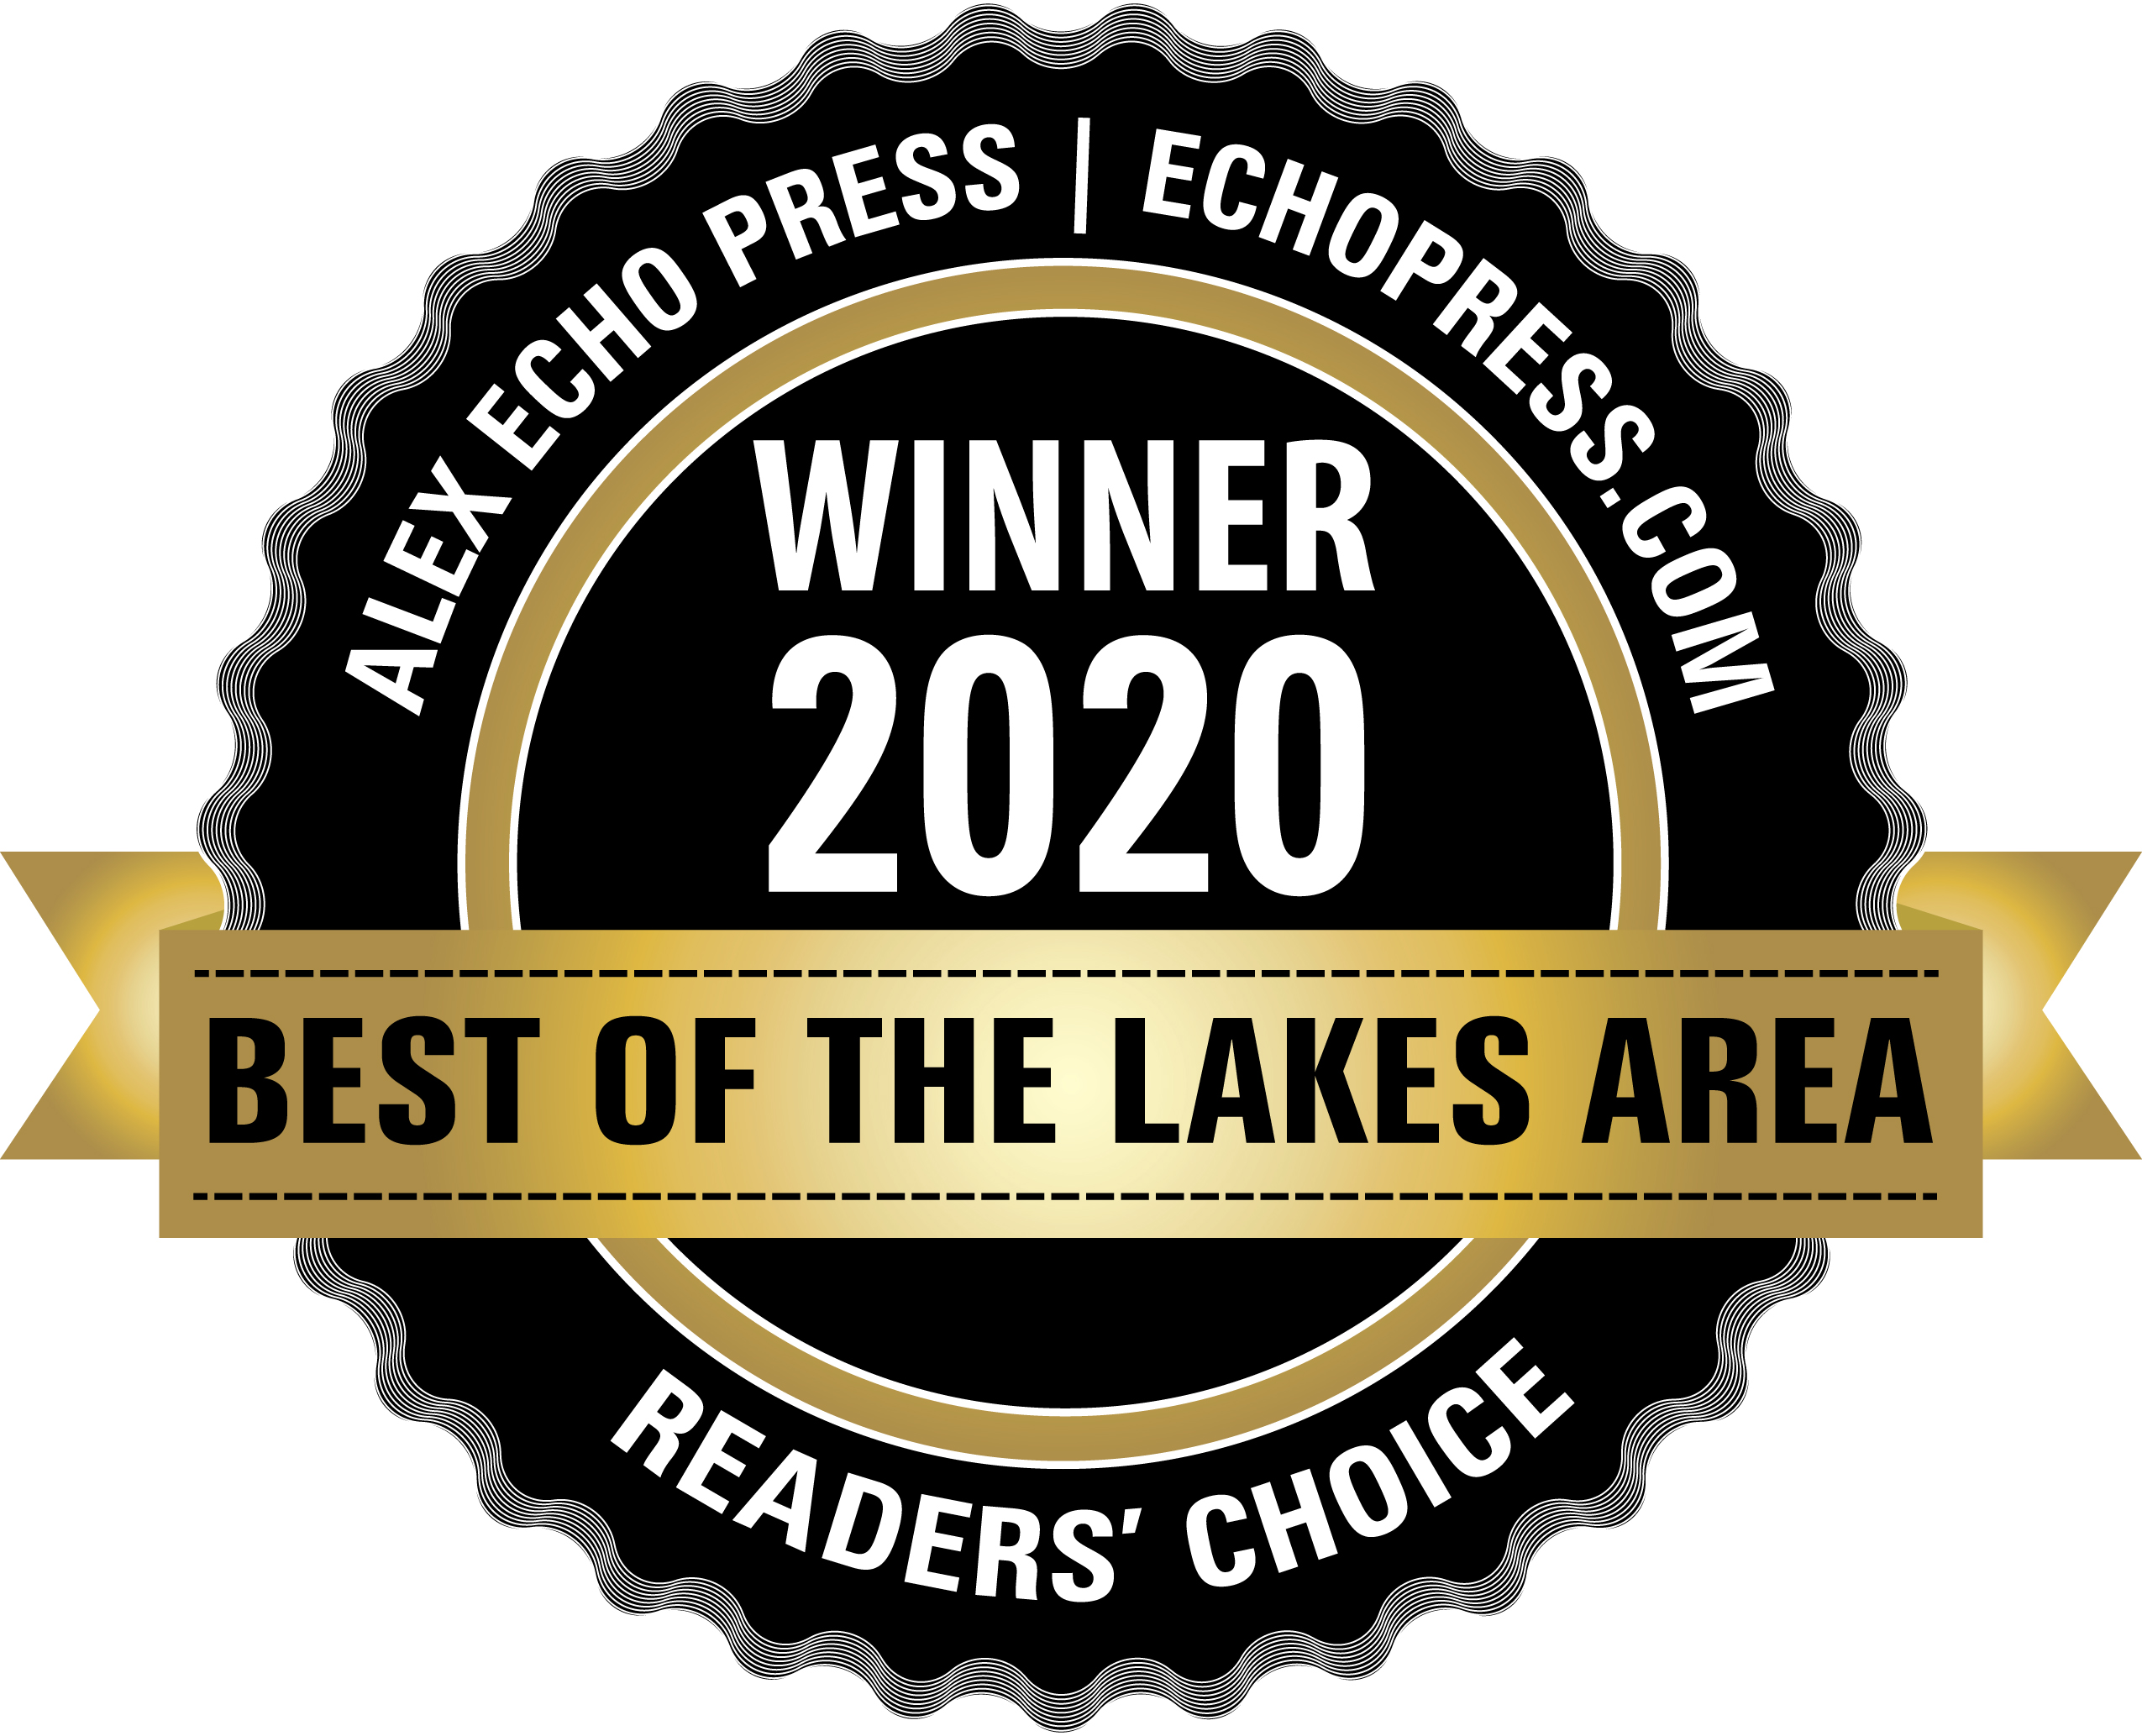 Hilltop voted Best Building Supply Store in the lakes area